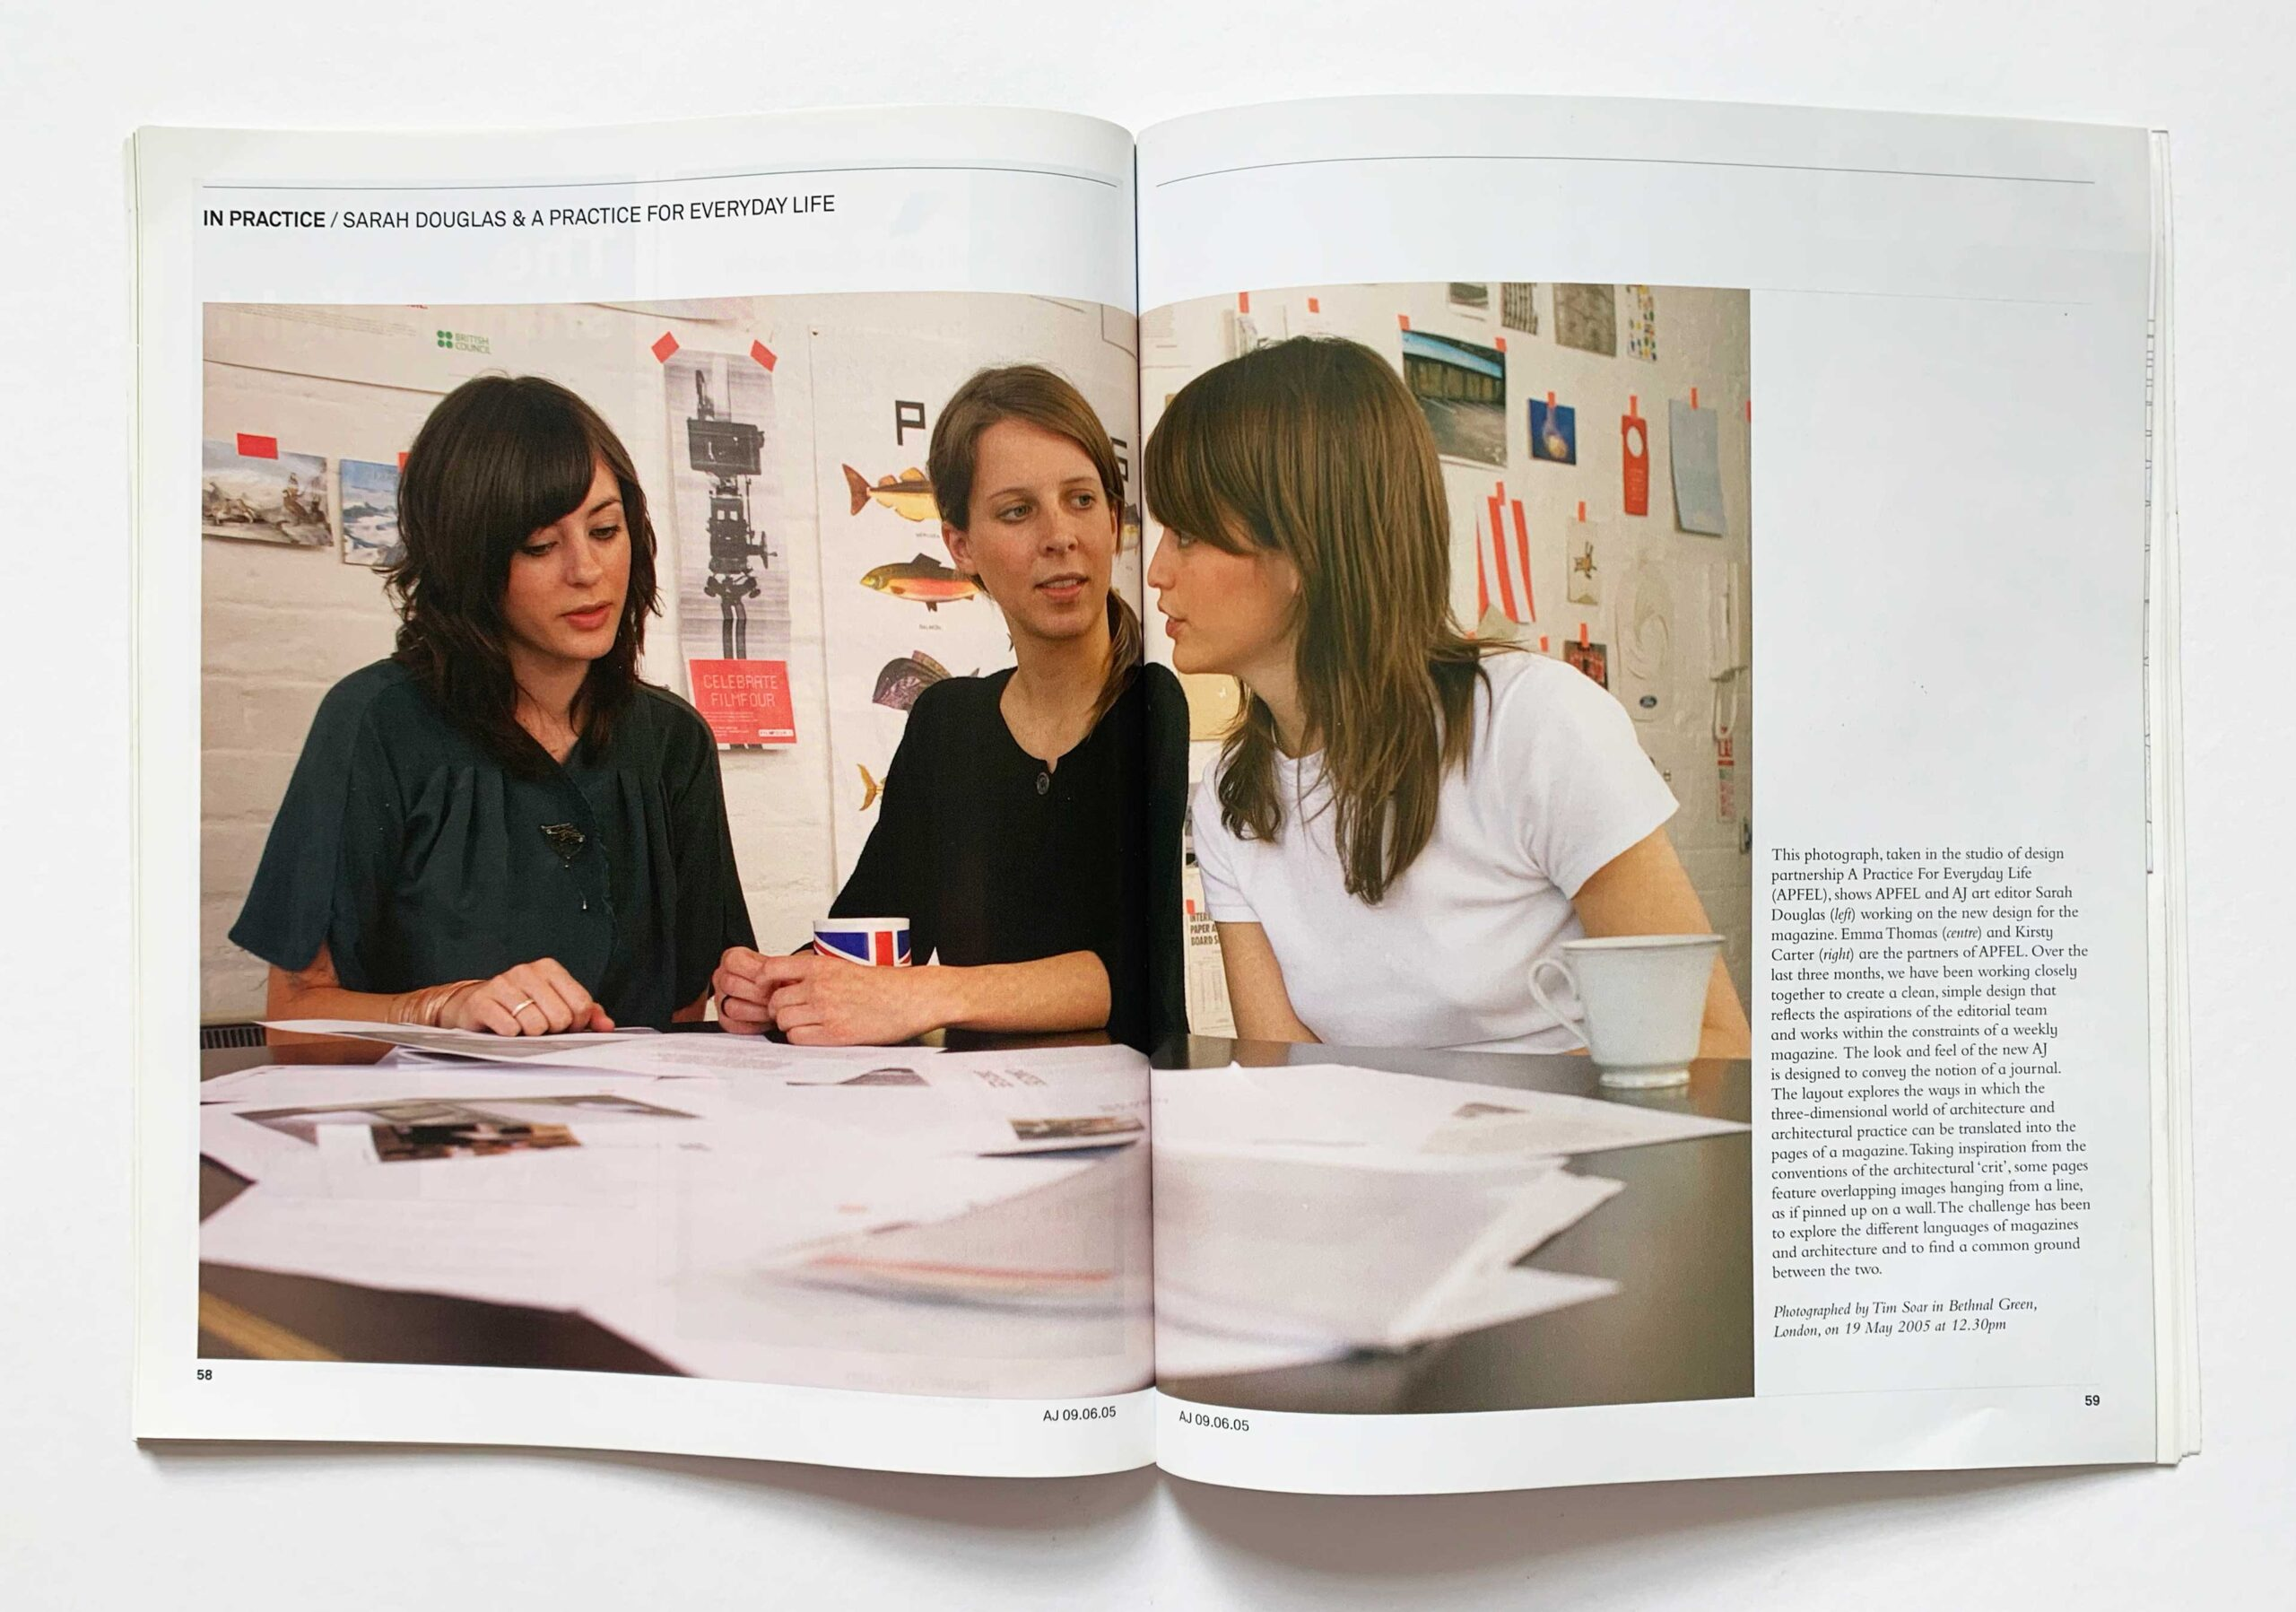 Fig. 6b. The relaunch issue of The Architects' Journal, edited by Isabel Allen, redesigned by Sarah Douglas and Apfel.